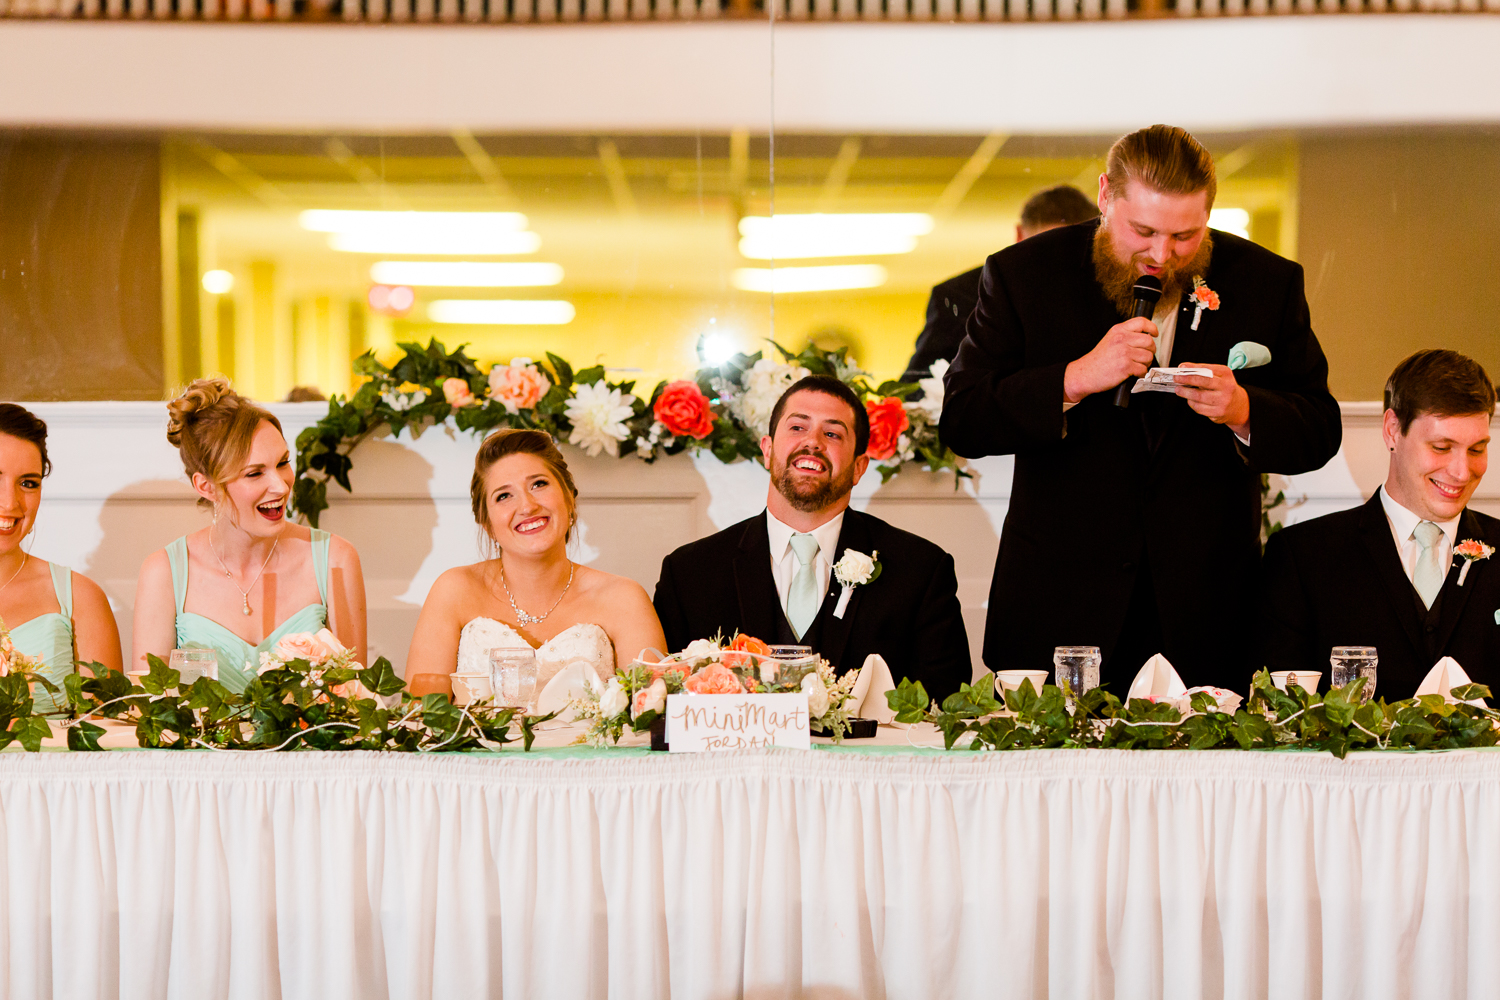 Best man gives a toast to the bride and the groom. The couple smiles.